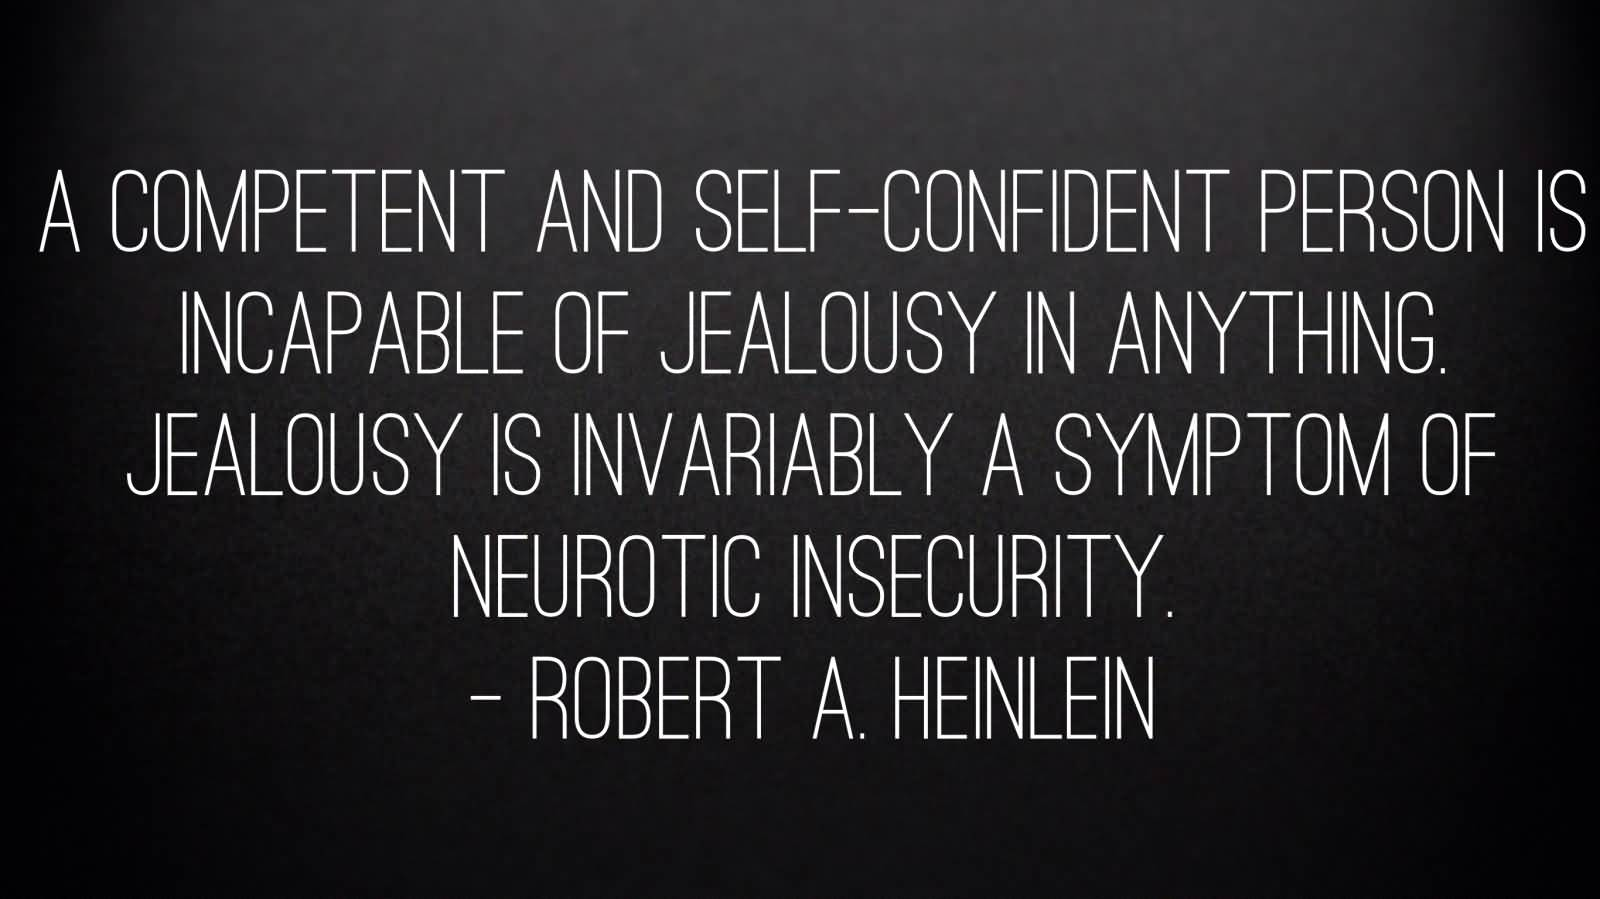 A competent and self-confident person is incapable of jealousy in anything. Jealousy is invariably a symptom of neurotic insecurity. - Robert A. Heinlein